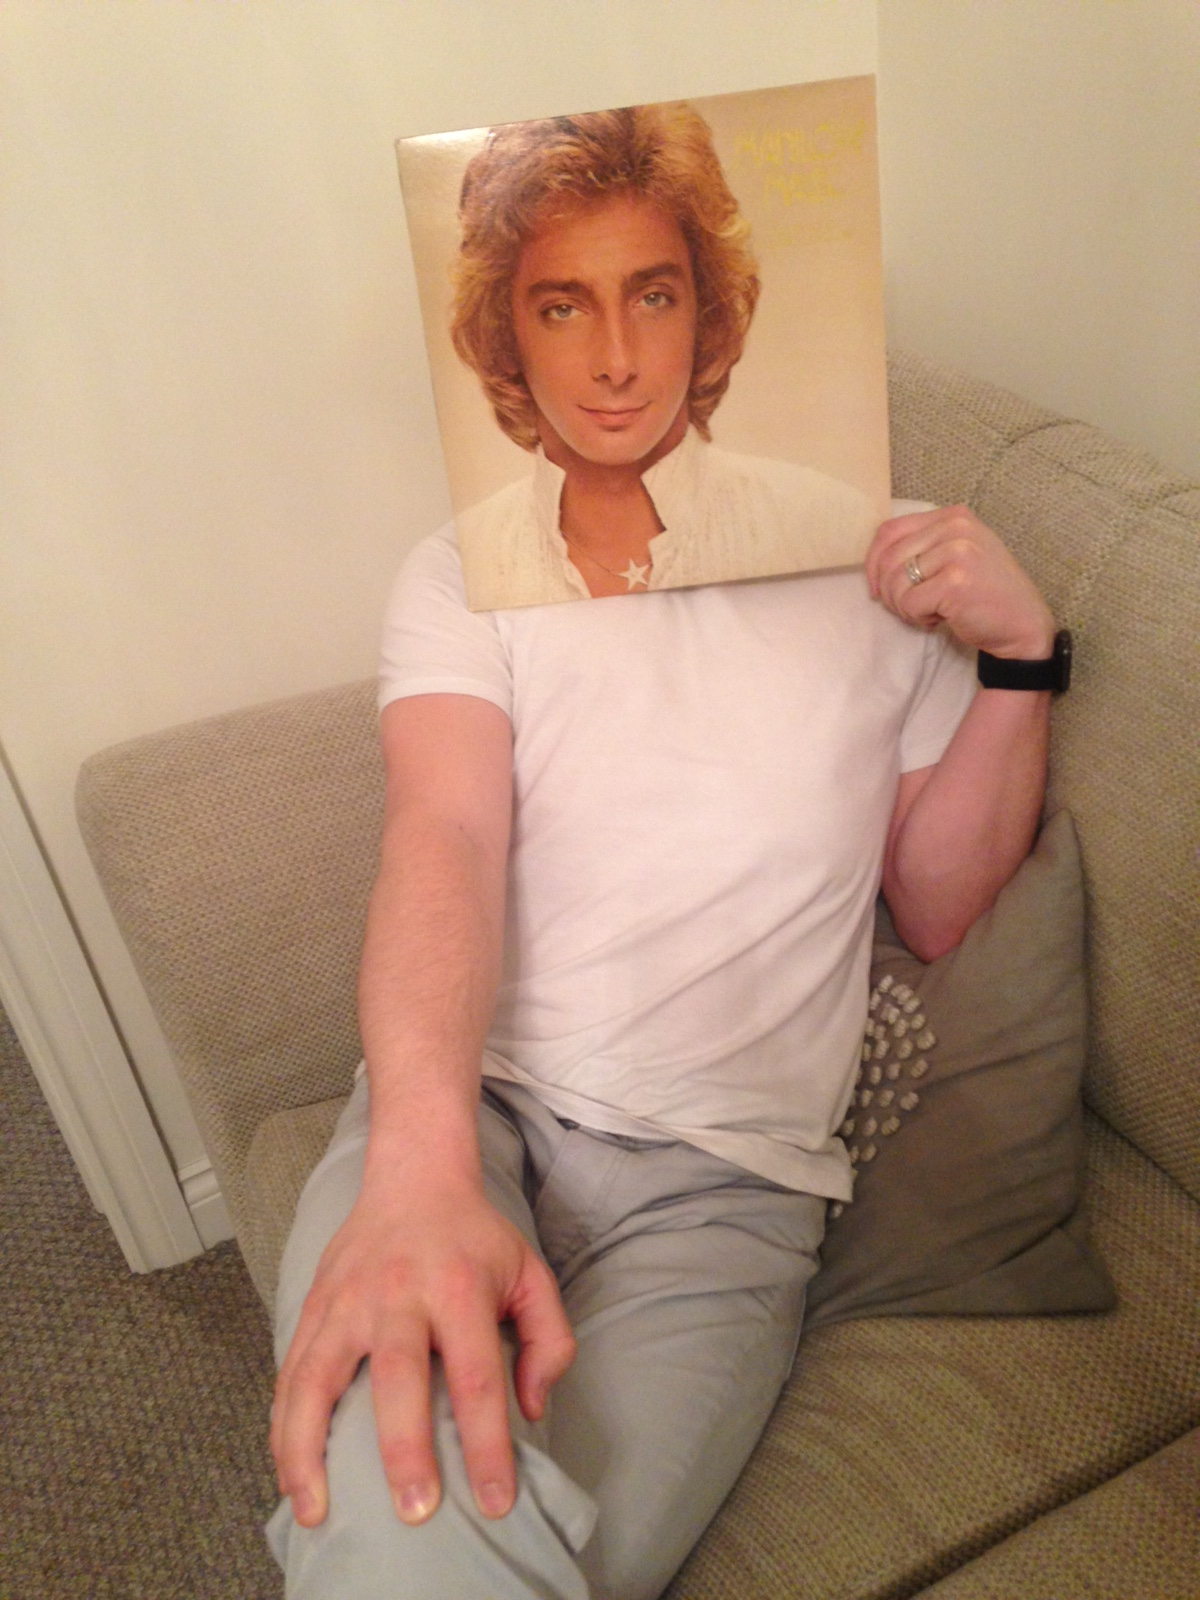 Mark-Galloway-barry-manilow